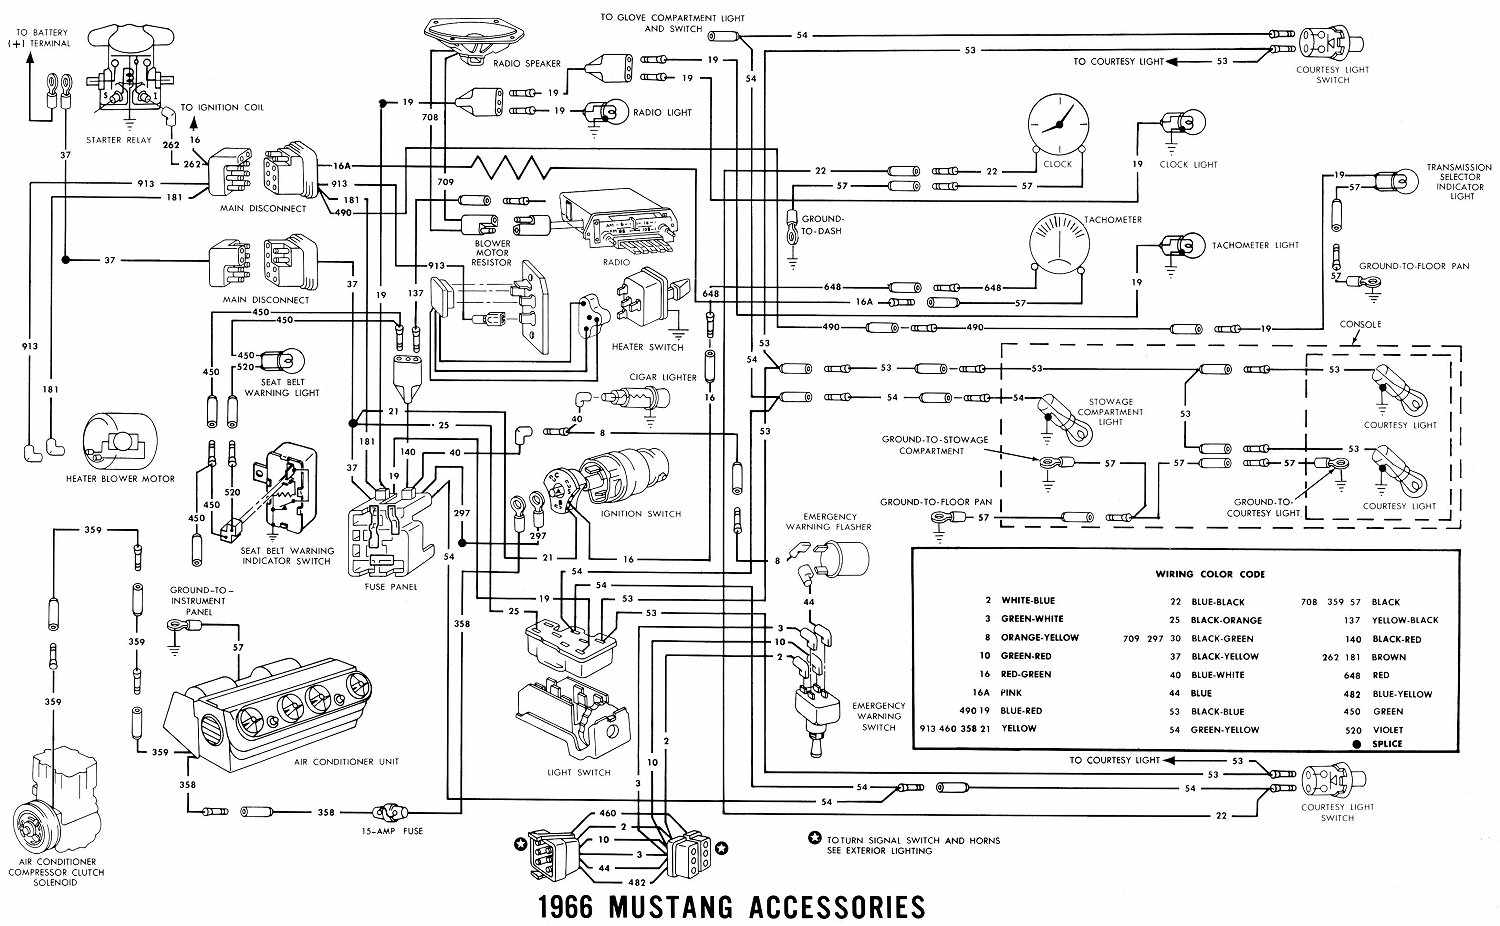 Mustang Complete Accessories Wiring Diagram